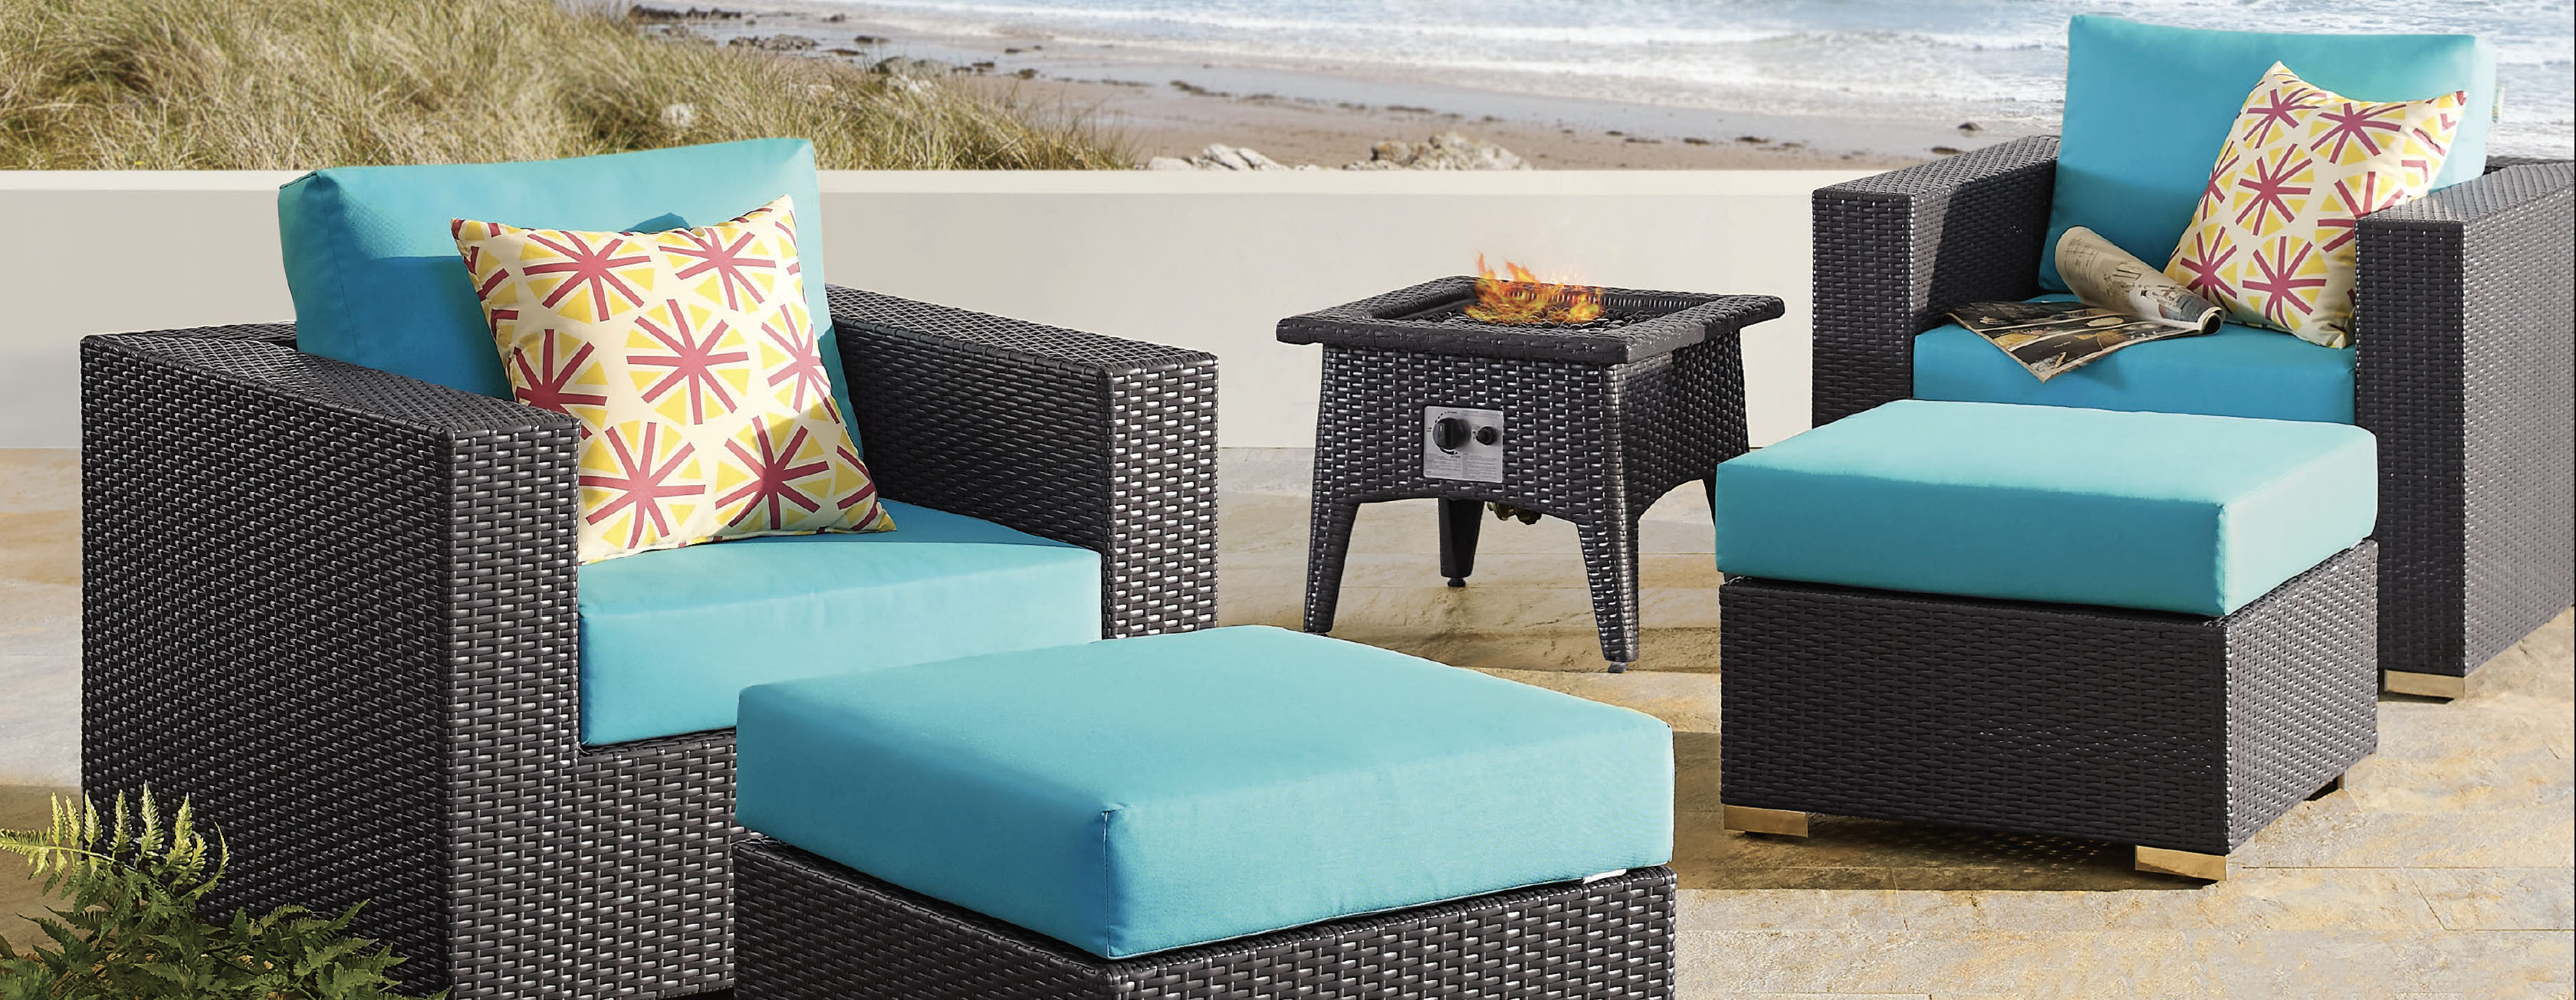 Pearl Daybed Outdoor Outdoor Daybeds Lounge Chairs Swings